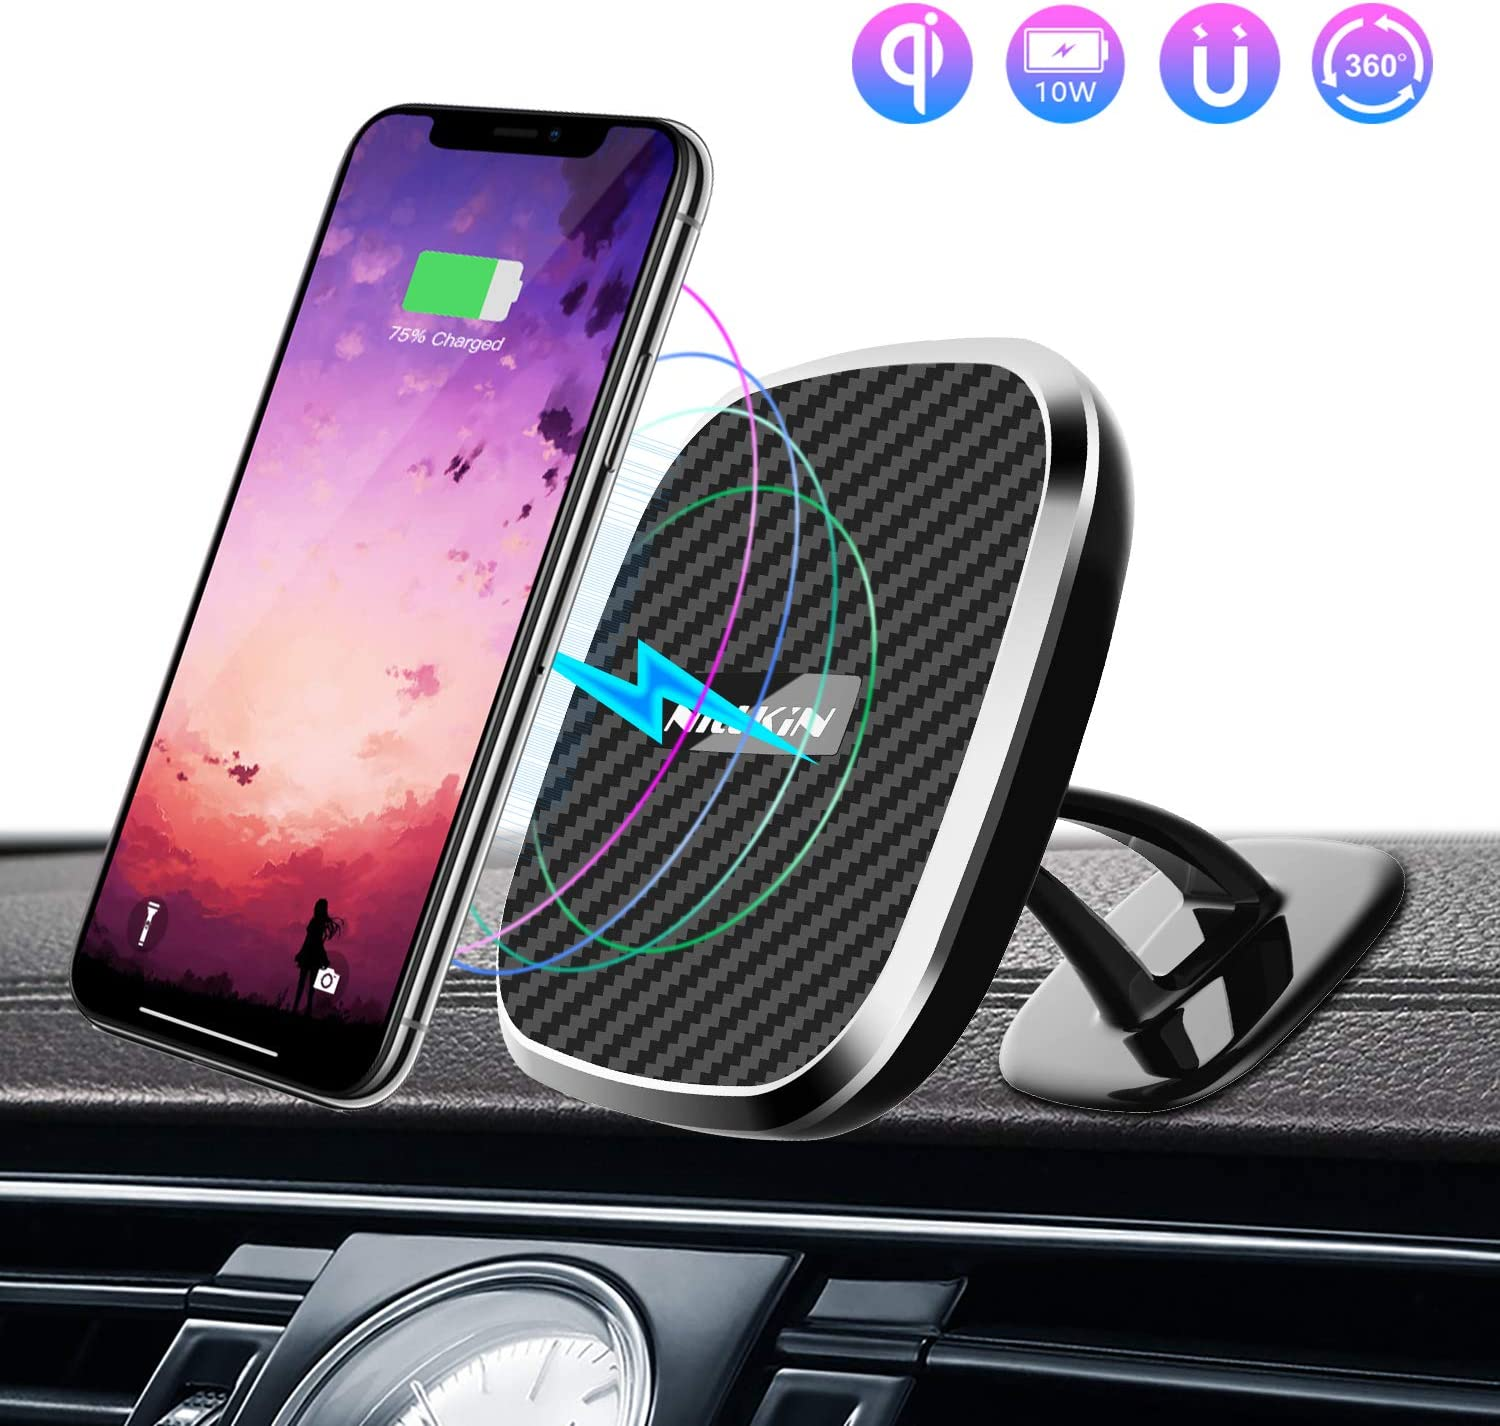 Nillkin Wireless Car Charger Mount, 2 in 1 Rotatable Magnetic Car Phone Holder 5W/ 7.5W/10W Qi Fast Wireless Charger with LED Indicator for iPhone XR/XS/XS MAX/X/8/8 Plus Galaxy S10/S10+/S9/S9+/S8/S8